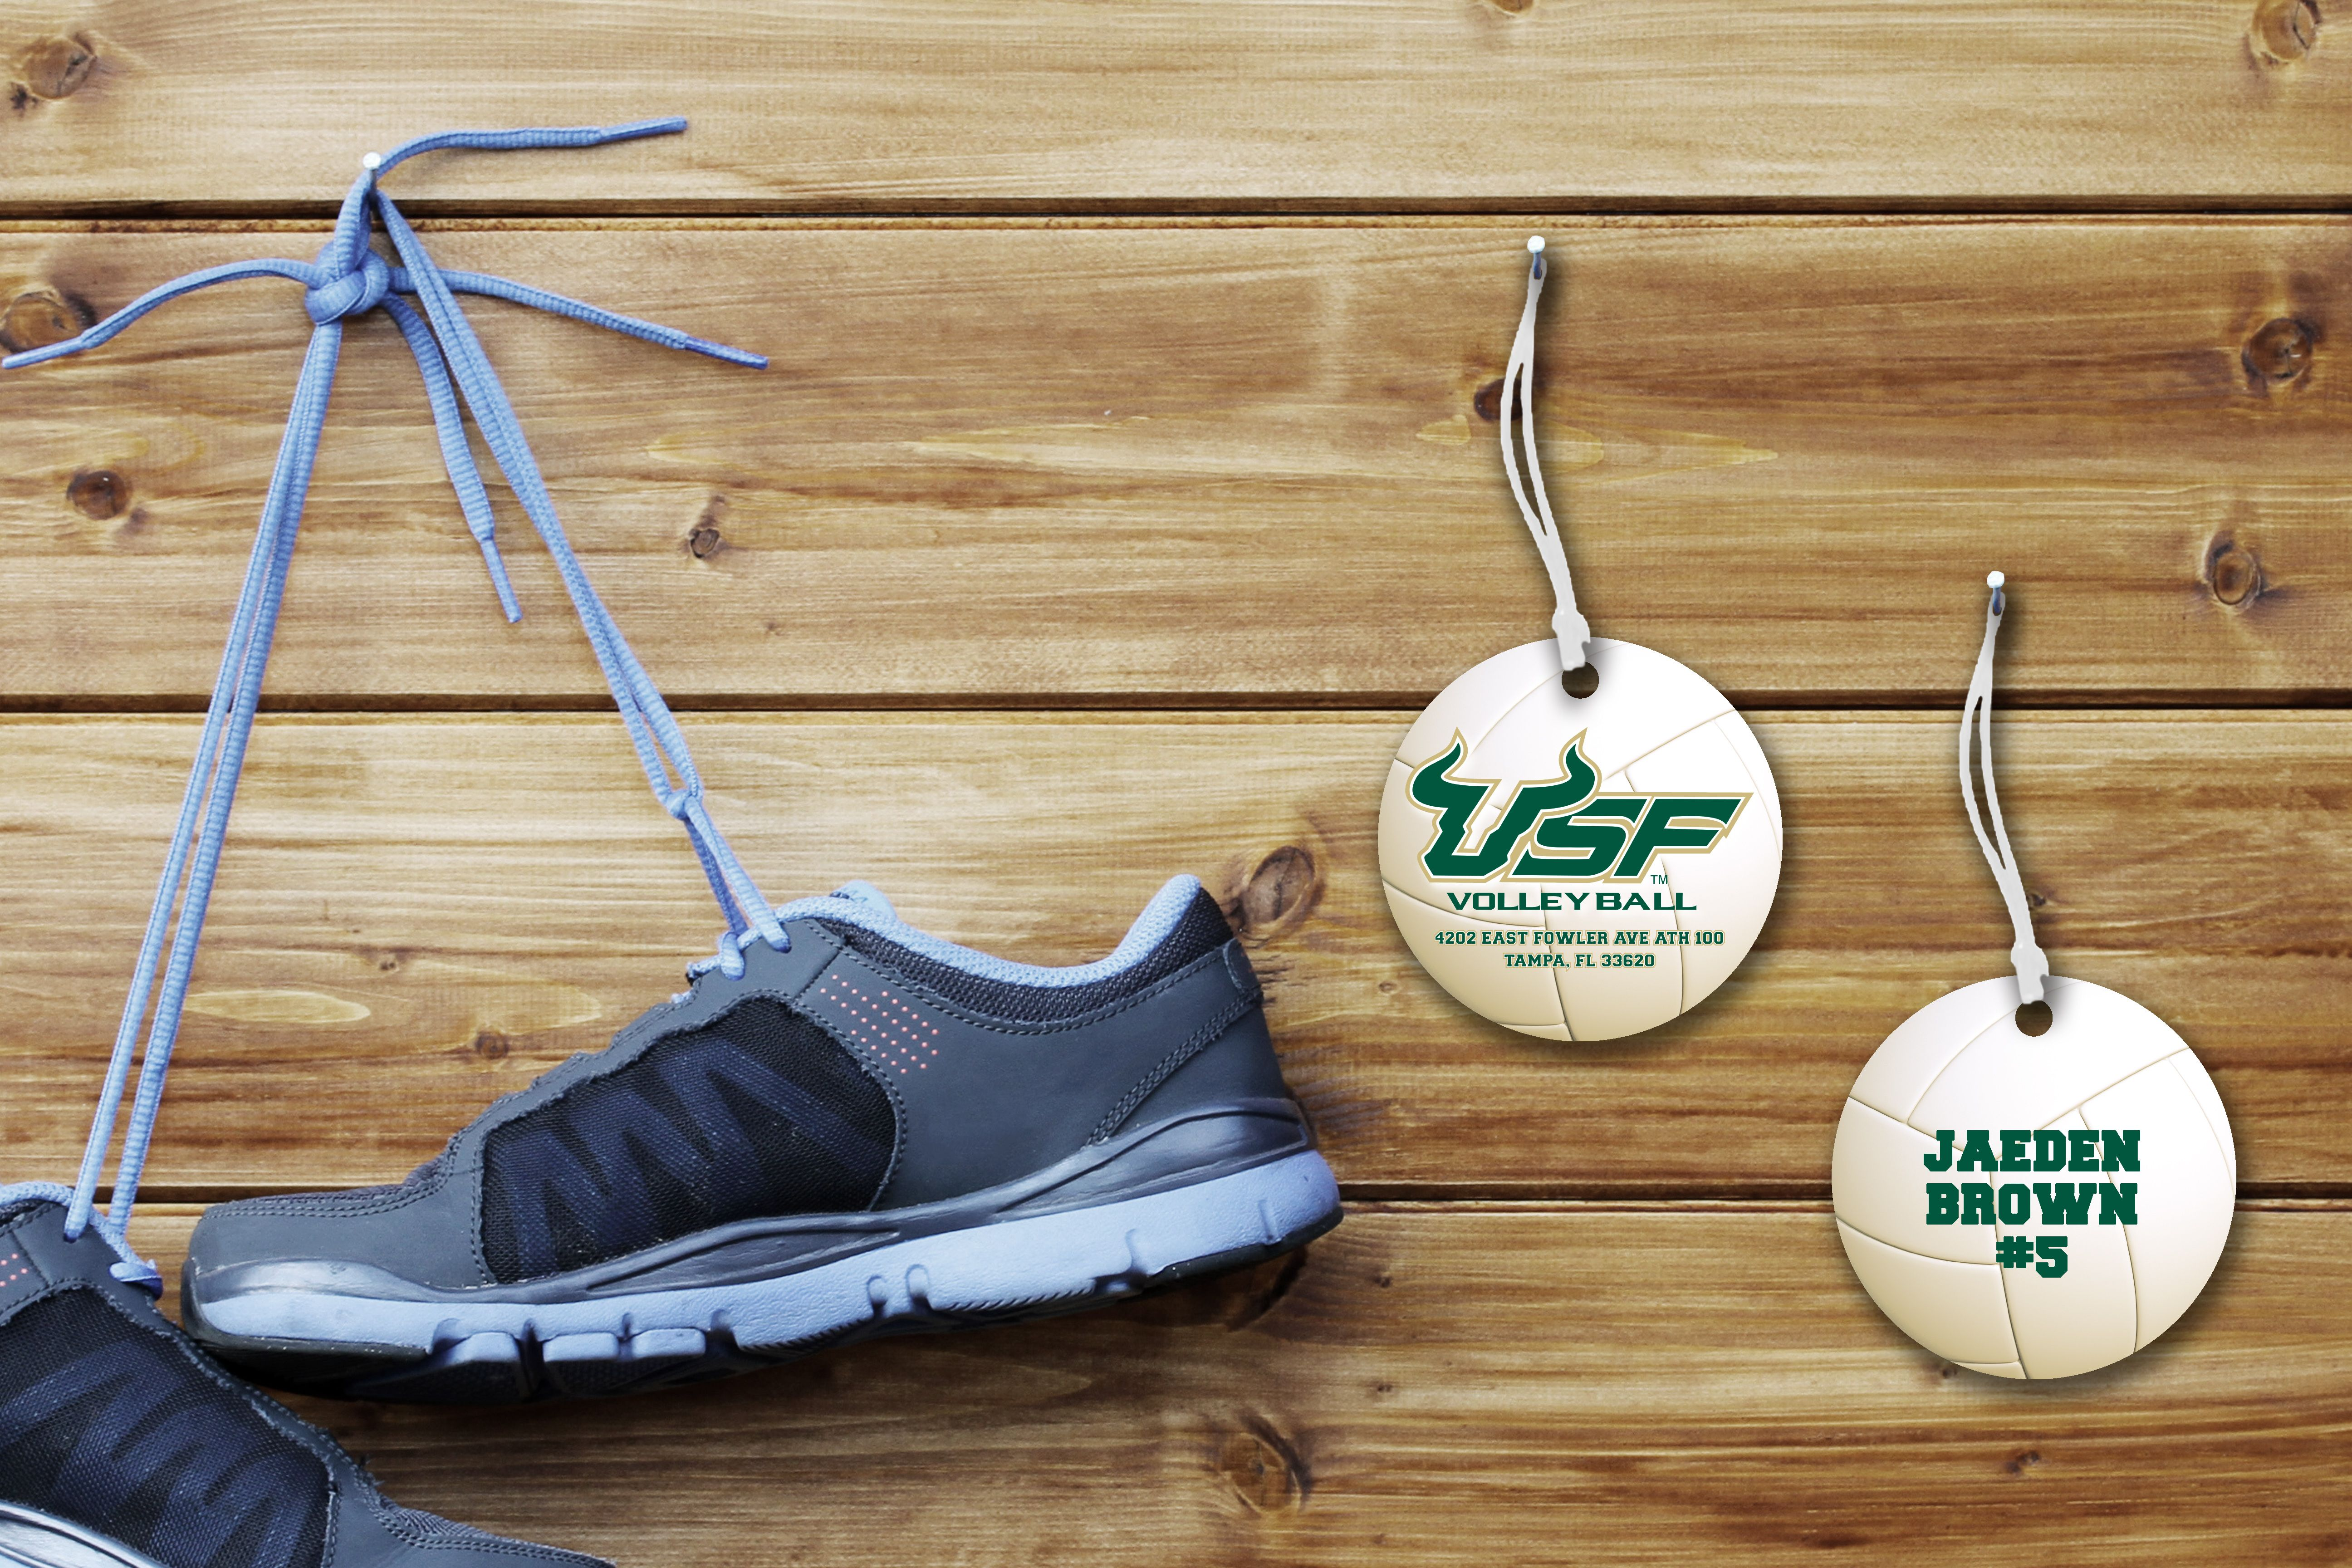 Volleyball Luggage Tags For University Of South Florida Key Tags University Marketing Luggage Tags